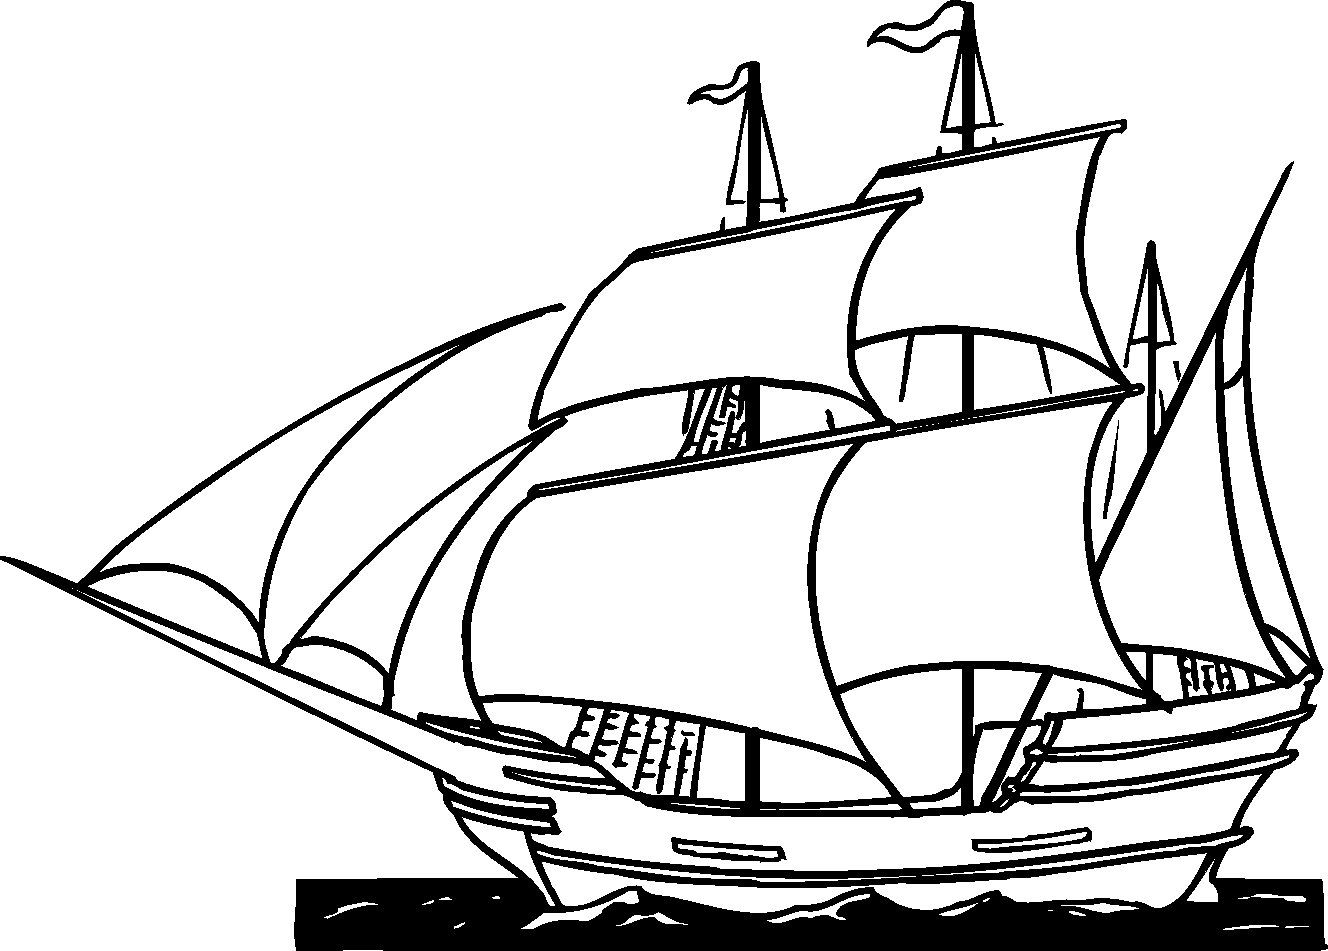 Thanksgiving Coloring Pages Thanksgiving Coloring Pages Thanksgiving Coloring Pages Pirate Coloring Pages Free Thanksgiving Coloring Pages